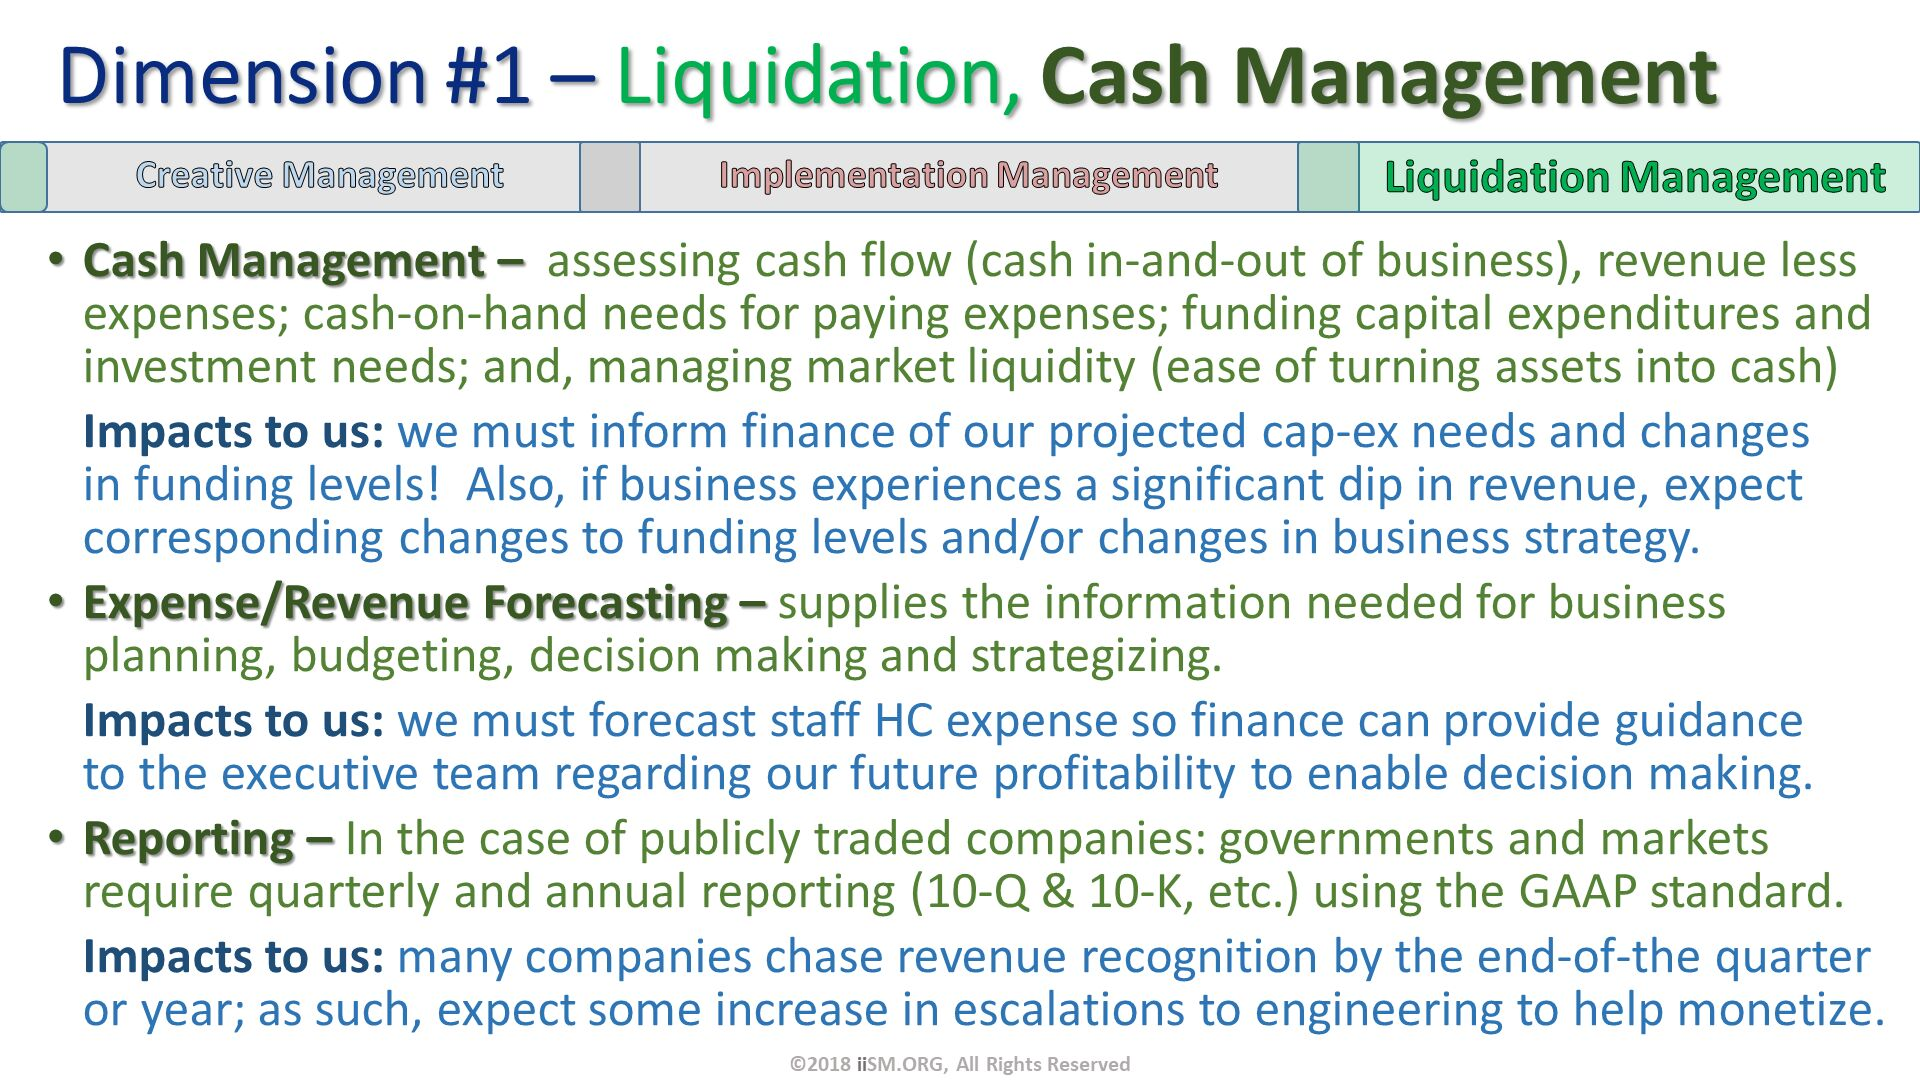 Cash Management –  assessing cash flow (cash in-and-out of business), revenue less expenses; cash-on-hand needs for paying expenses; funding capital expenditures and investment needs; and, managing market liquidity (ease of turning assets into cash) Impacts to us: we must inform finance of our projected cap-ex needs and changes in funding levels!  Also, if business experiences a significant dip in revenue, expect corresponding changes to funding levels and/or changes in business strategy. Expense/Revenue Forecasting – supplies the information needed for business planning, budgeting, decision making and strategizing. Impacts to us: we must forecast staff HC expense so finance can provide guidance to the executive team regarding our future profitability to enable decision making. Reporting – In the case of publicly traded companies: governments and markets require quarterly and annual reporting (10-Q & 10-K, etc.) using the GAAP standard. Impacts to us: many companies chase revenue recognition by the end-of-the quarter or year; as such, expect some increase in escalations to engineering to help monetize. Dimension #1 – Liquidation, Cash Management. ©2018 iiSM.ORG, All Rights Reserved.